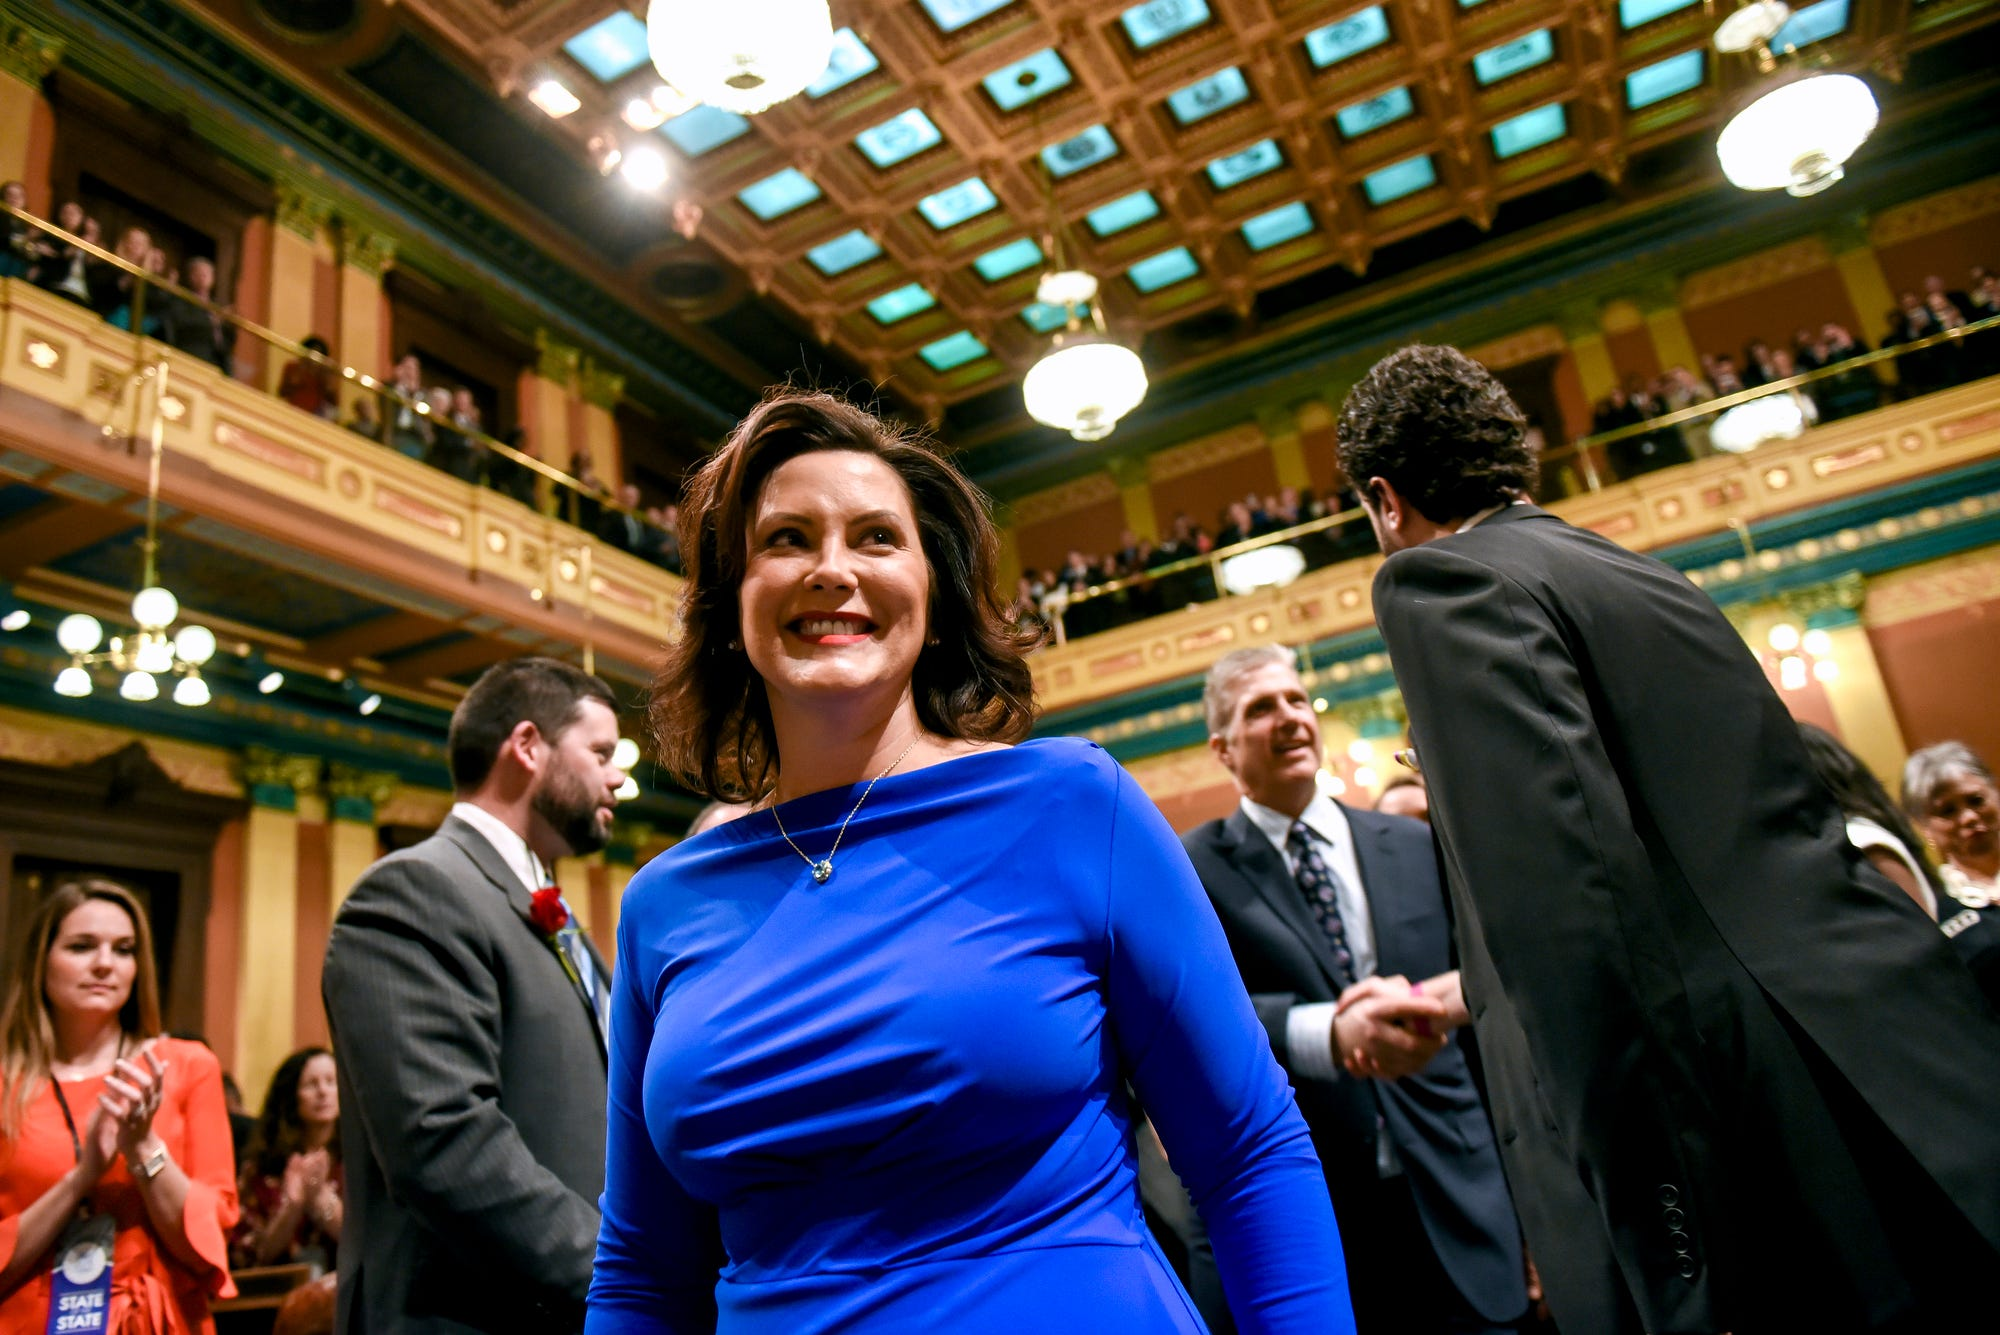 How to watch Michigan Gov. Gretchen Whitmer State of the State speech